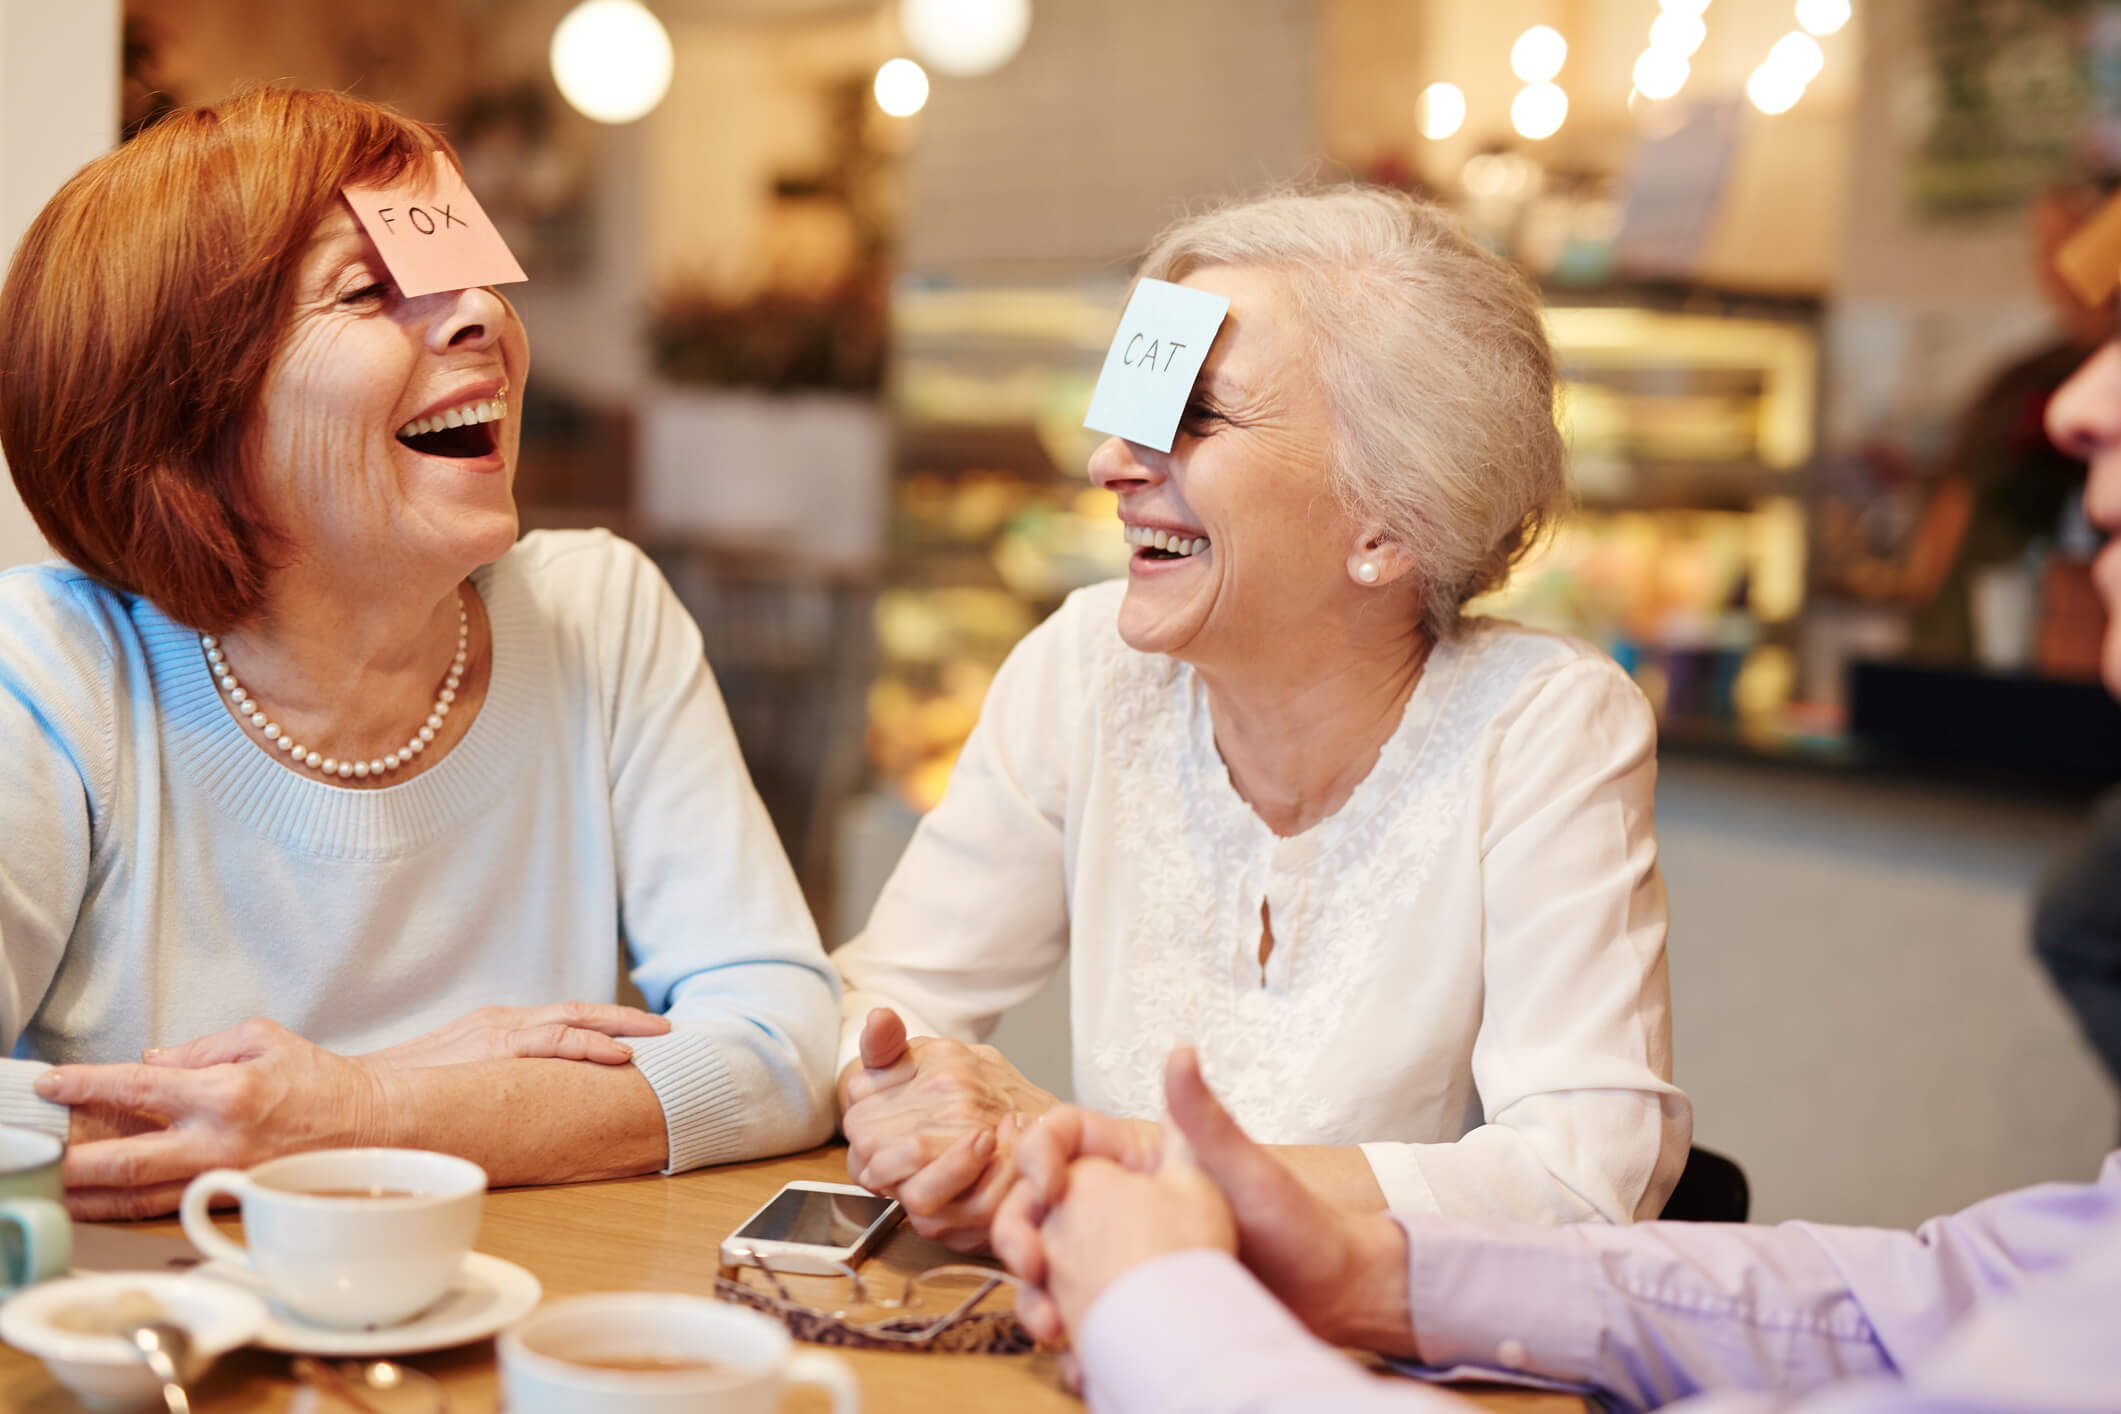 Image of previous post - WHY SOCIALIZATION MATTERS FOR OLDER ADULTS